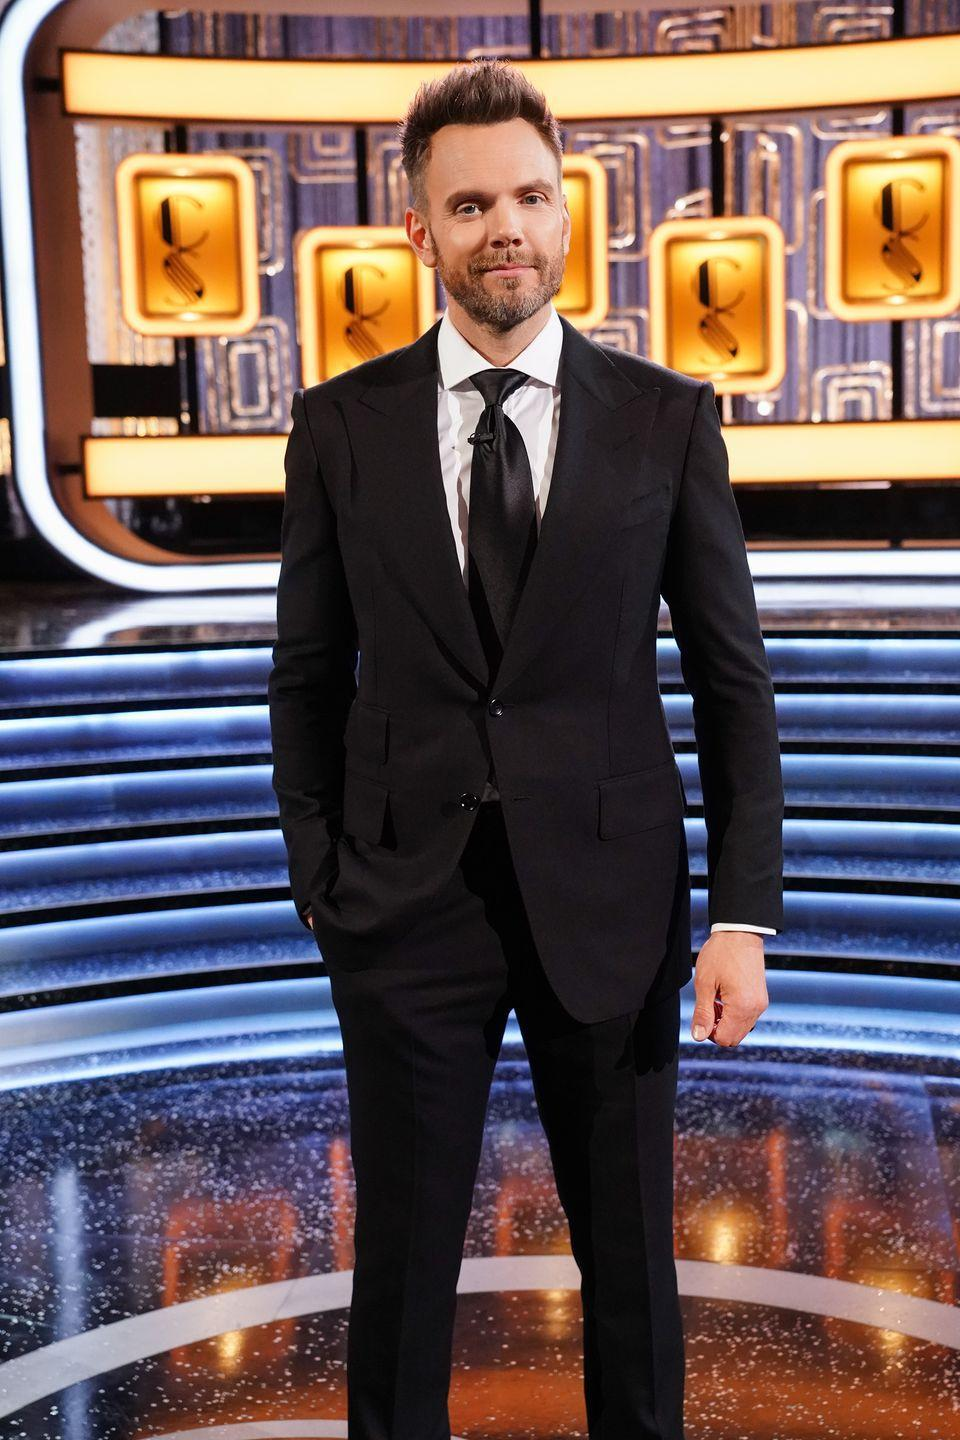 <p>Joel McHale, an actor and comedian, is the host of the 2019 primetime reboot. <em>Card Sharks </em>was renewed for a second season. Before <em>Card Sharks, </em>McHale hosted <em>The Soup </em>on E! for 11 years. He also starred in the sitcom <em>Community. </em>In 2018, McHale hosted his own half-hour talk show on Netflix.</p>